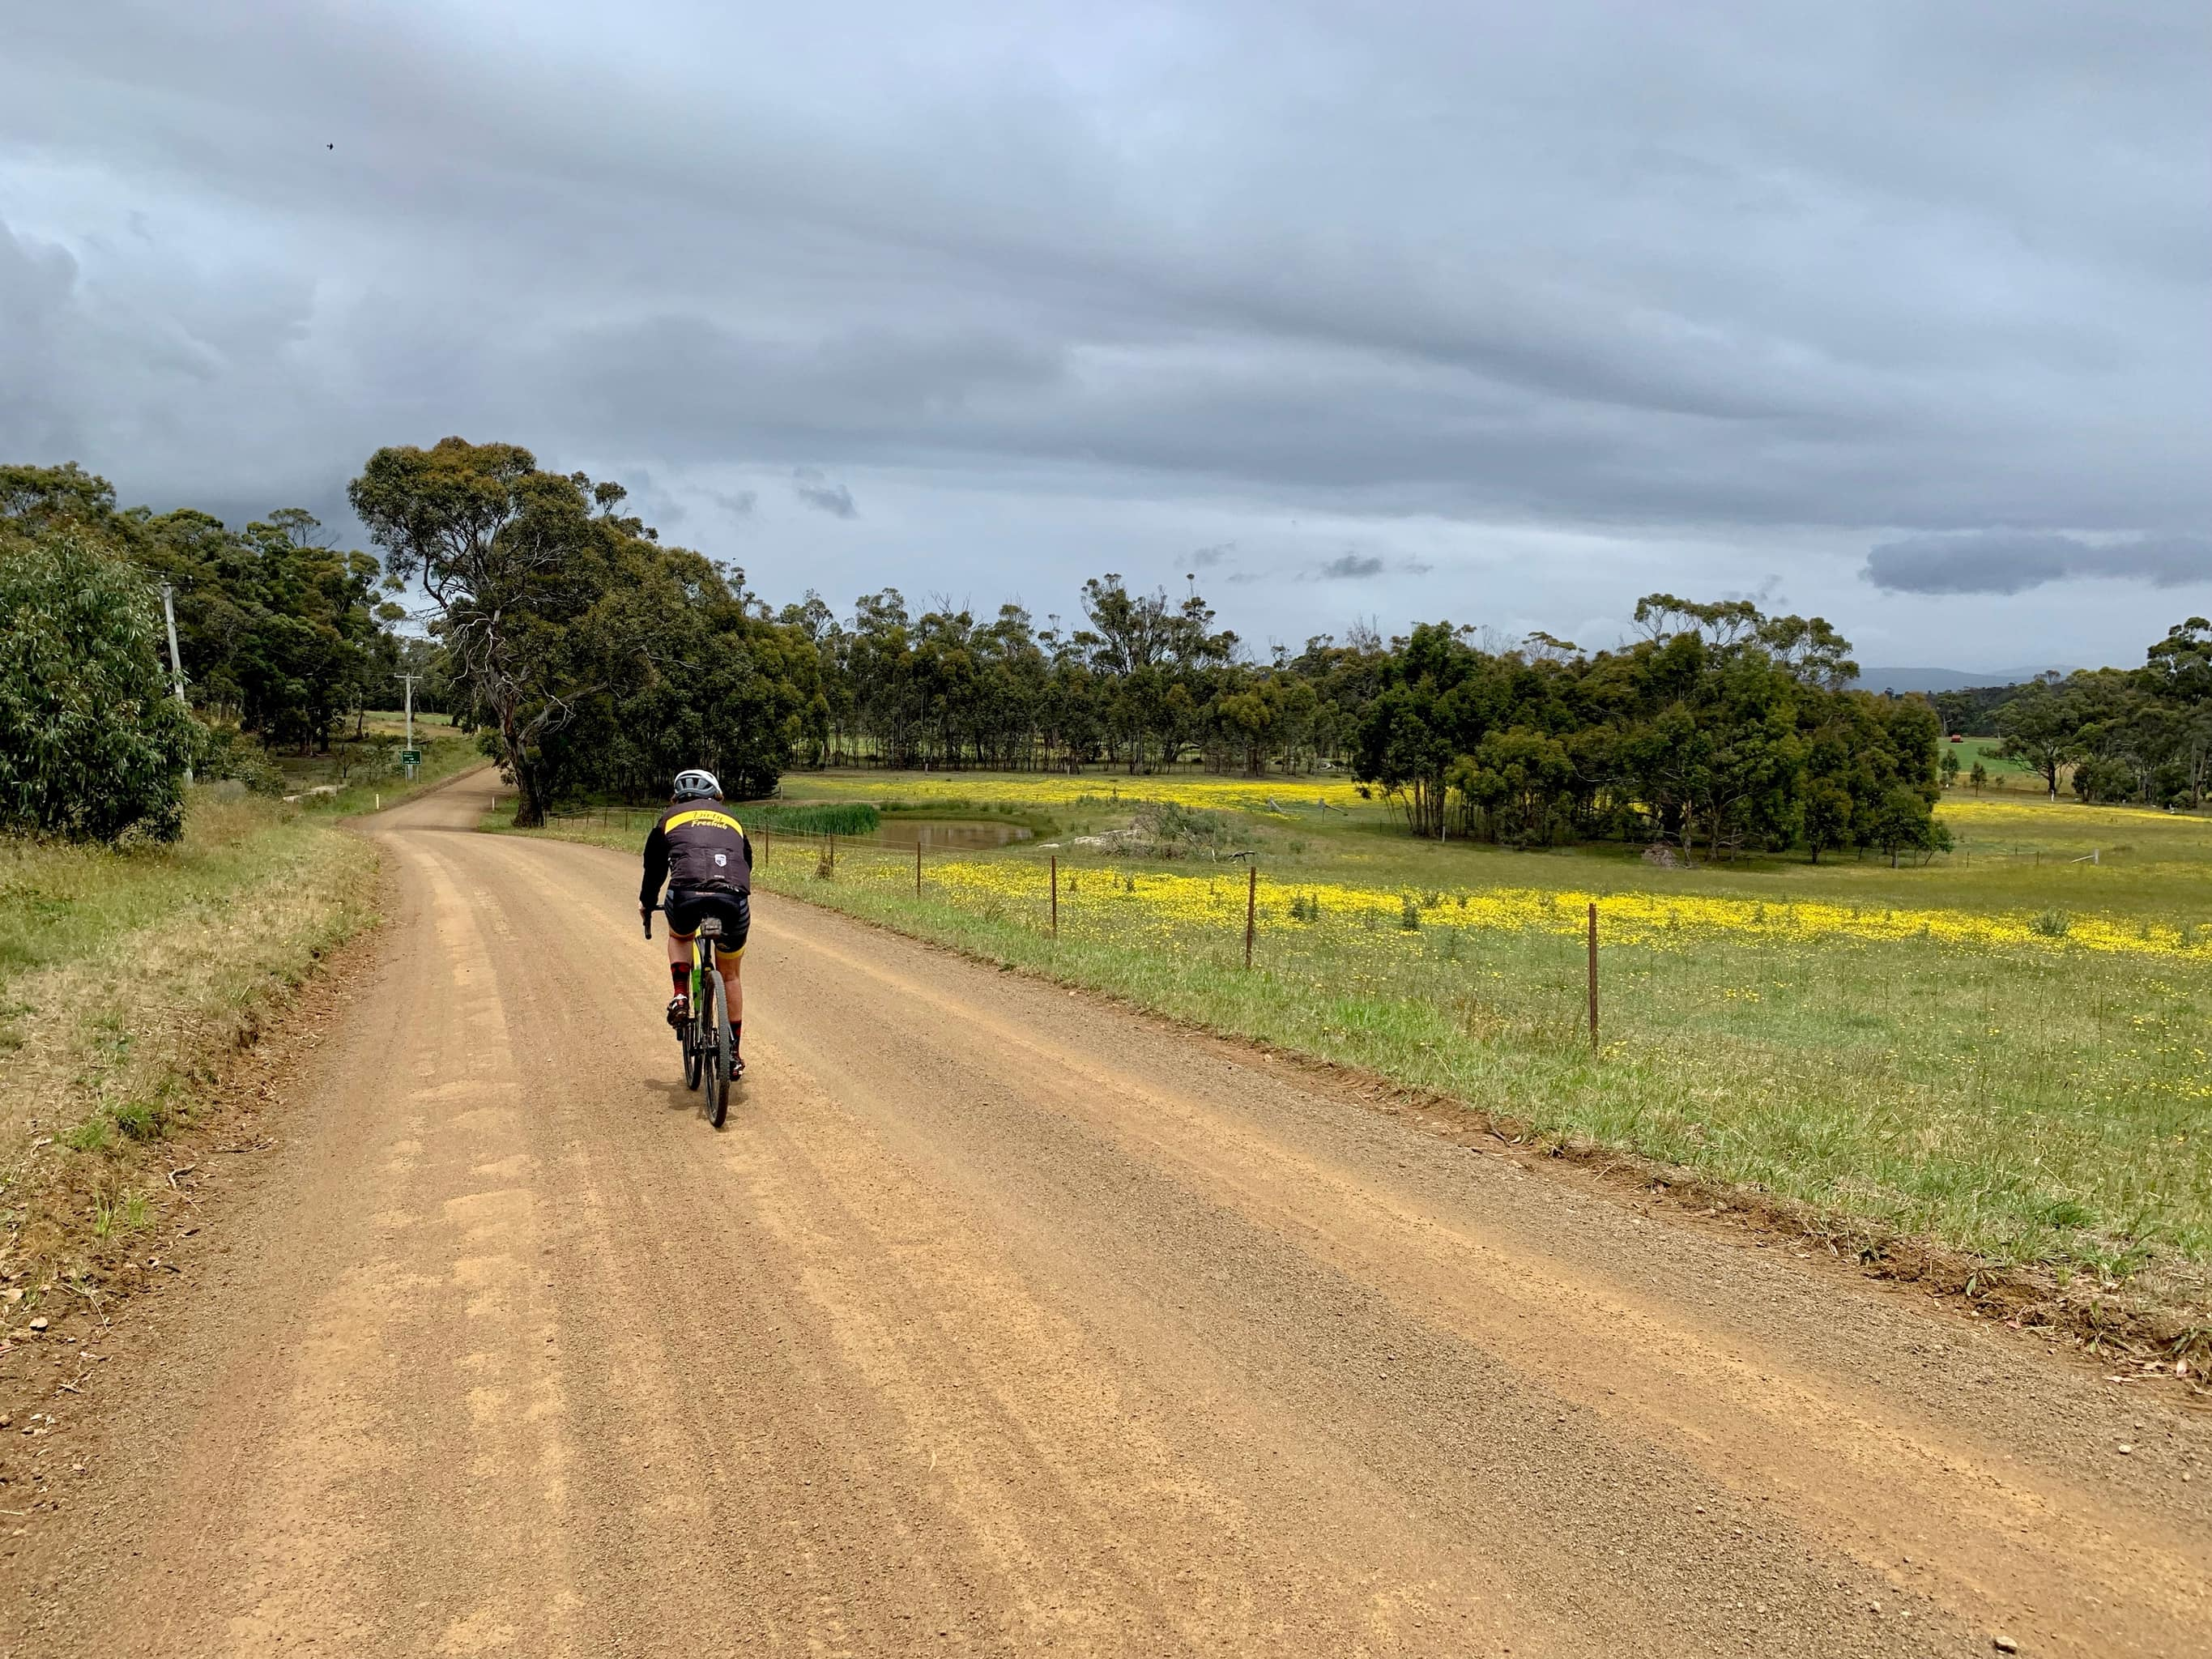 Bike rider on gravel road on North Bruny Island with field of yellow flowers to right.